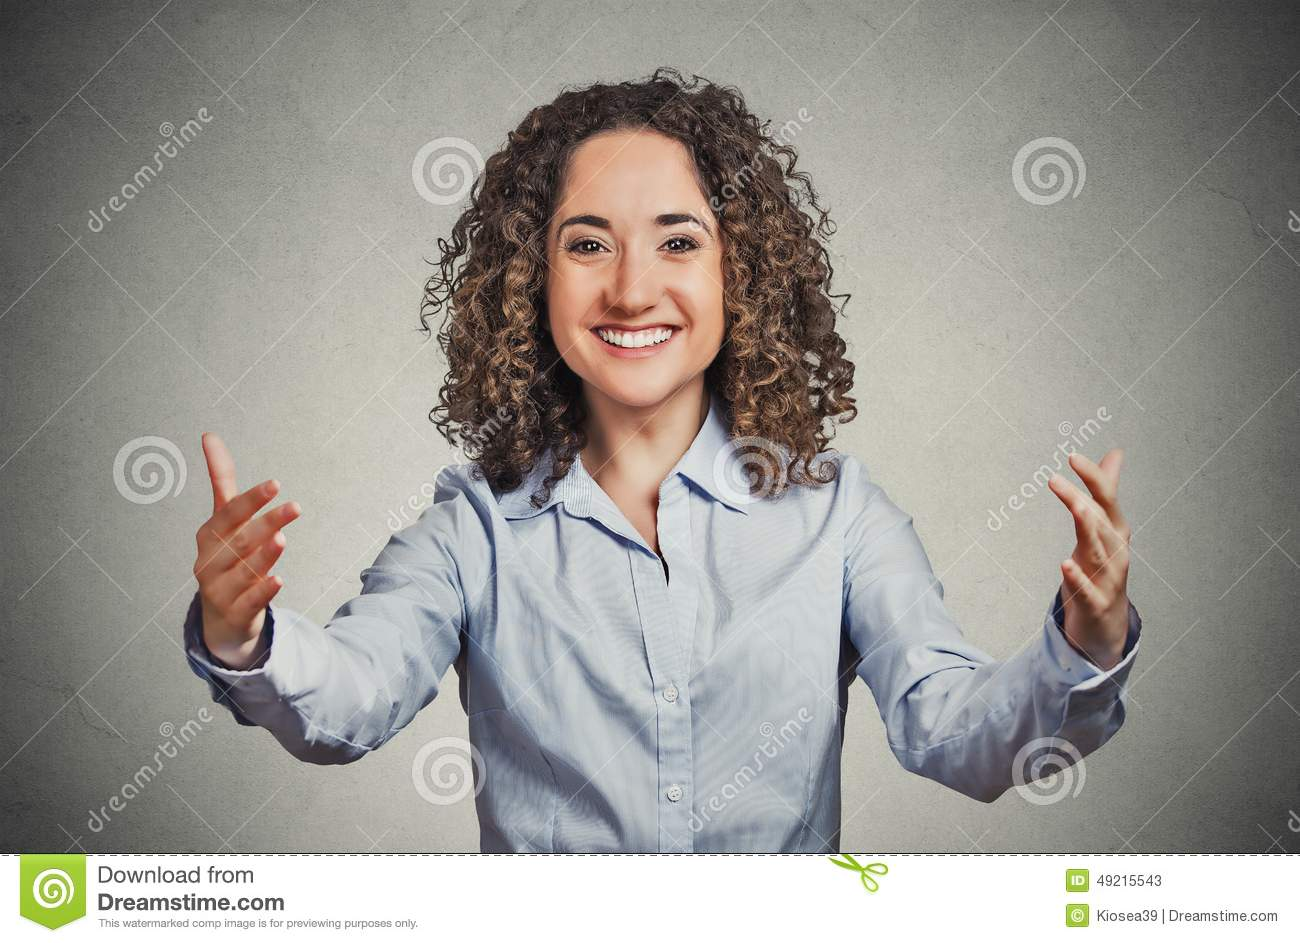 Happy woman motioning with arms to come and give her a bear hug